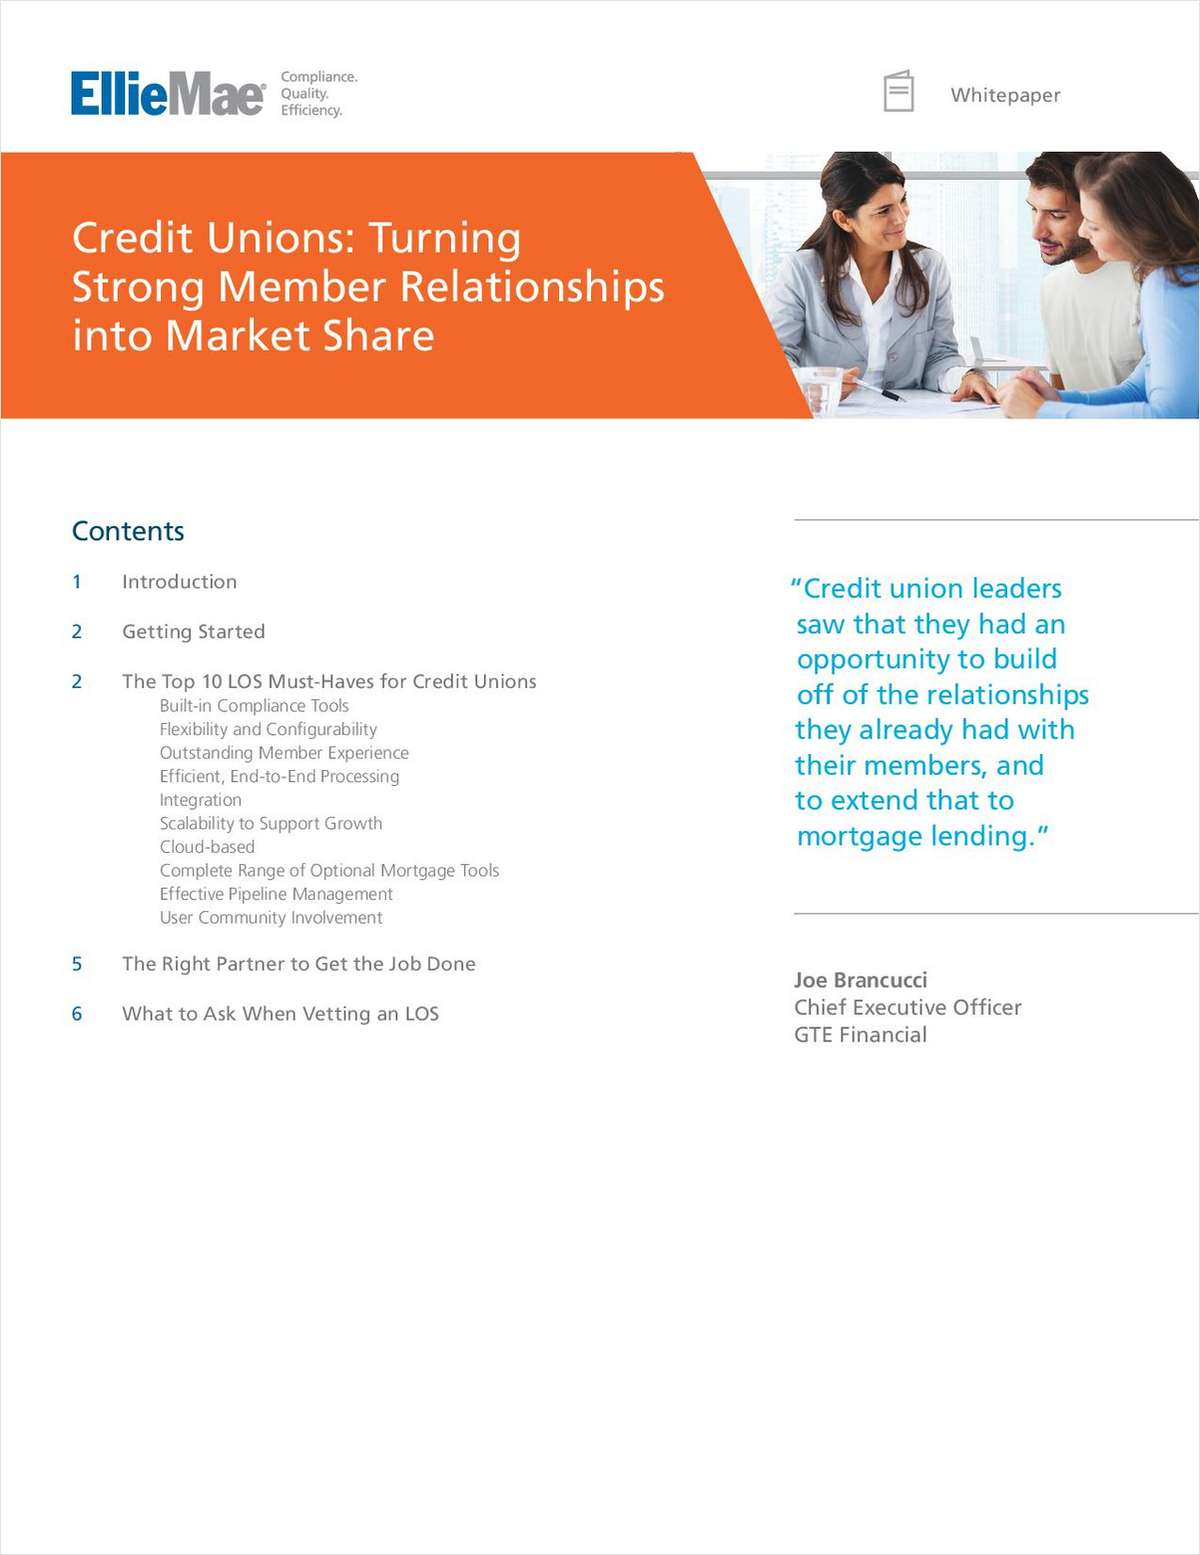 Credit Unions: Turning Strong Member Relationships into Market Share